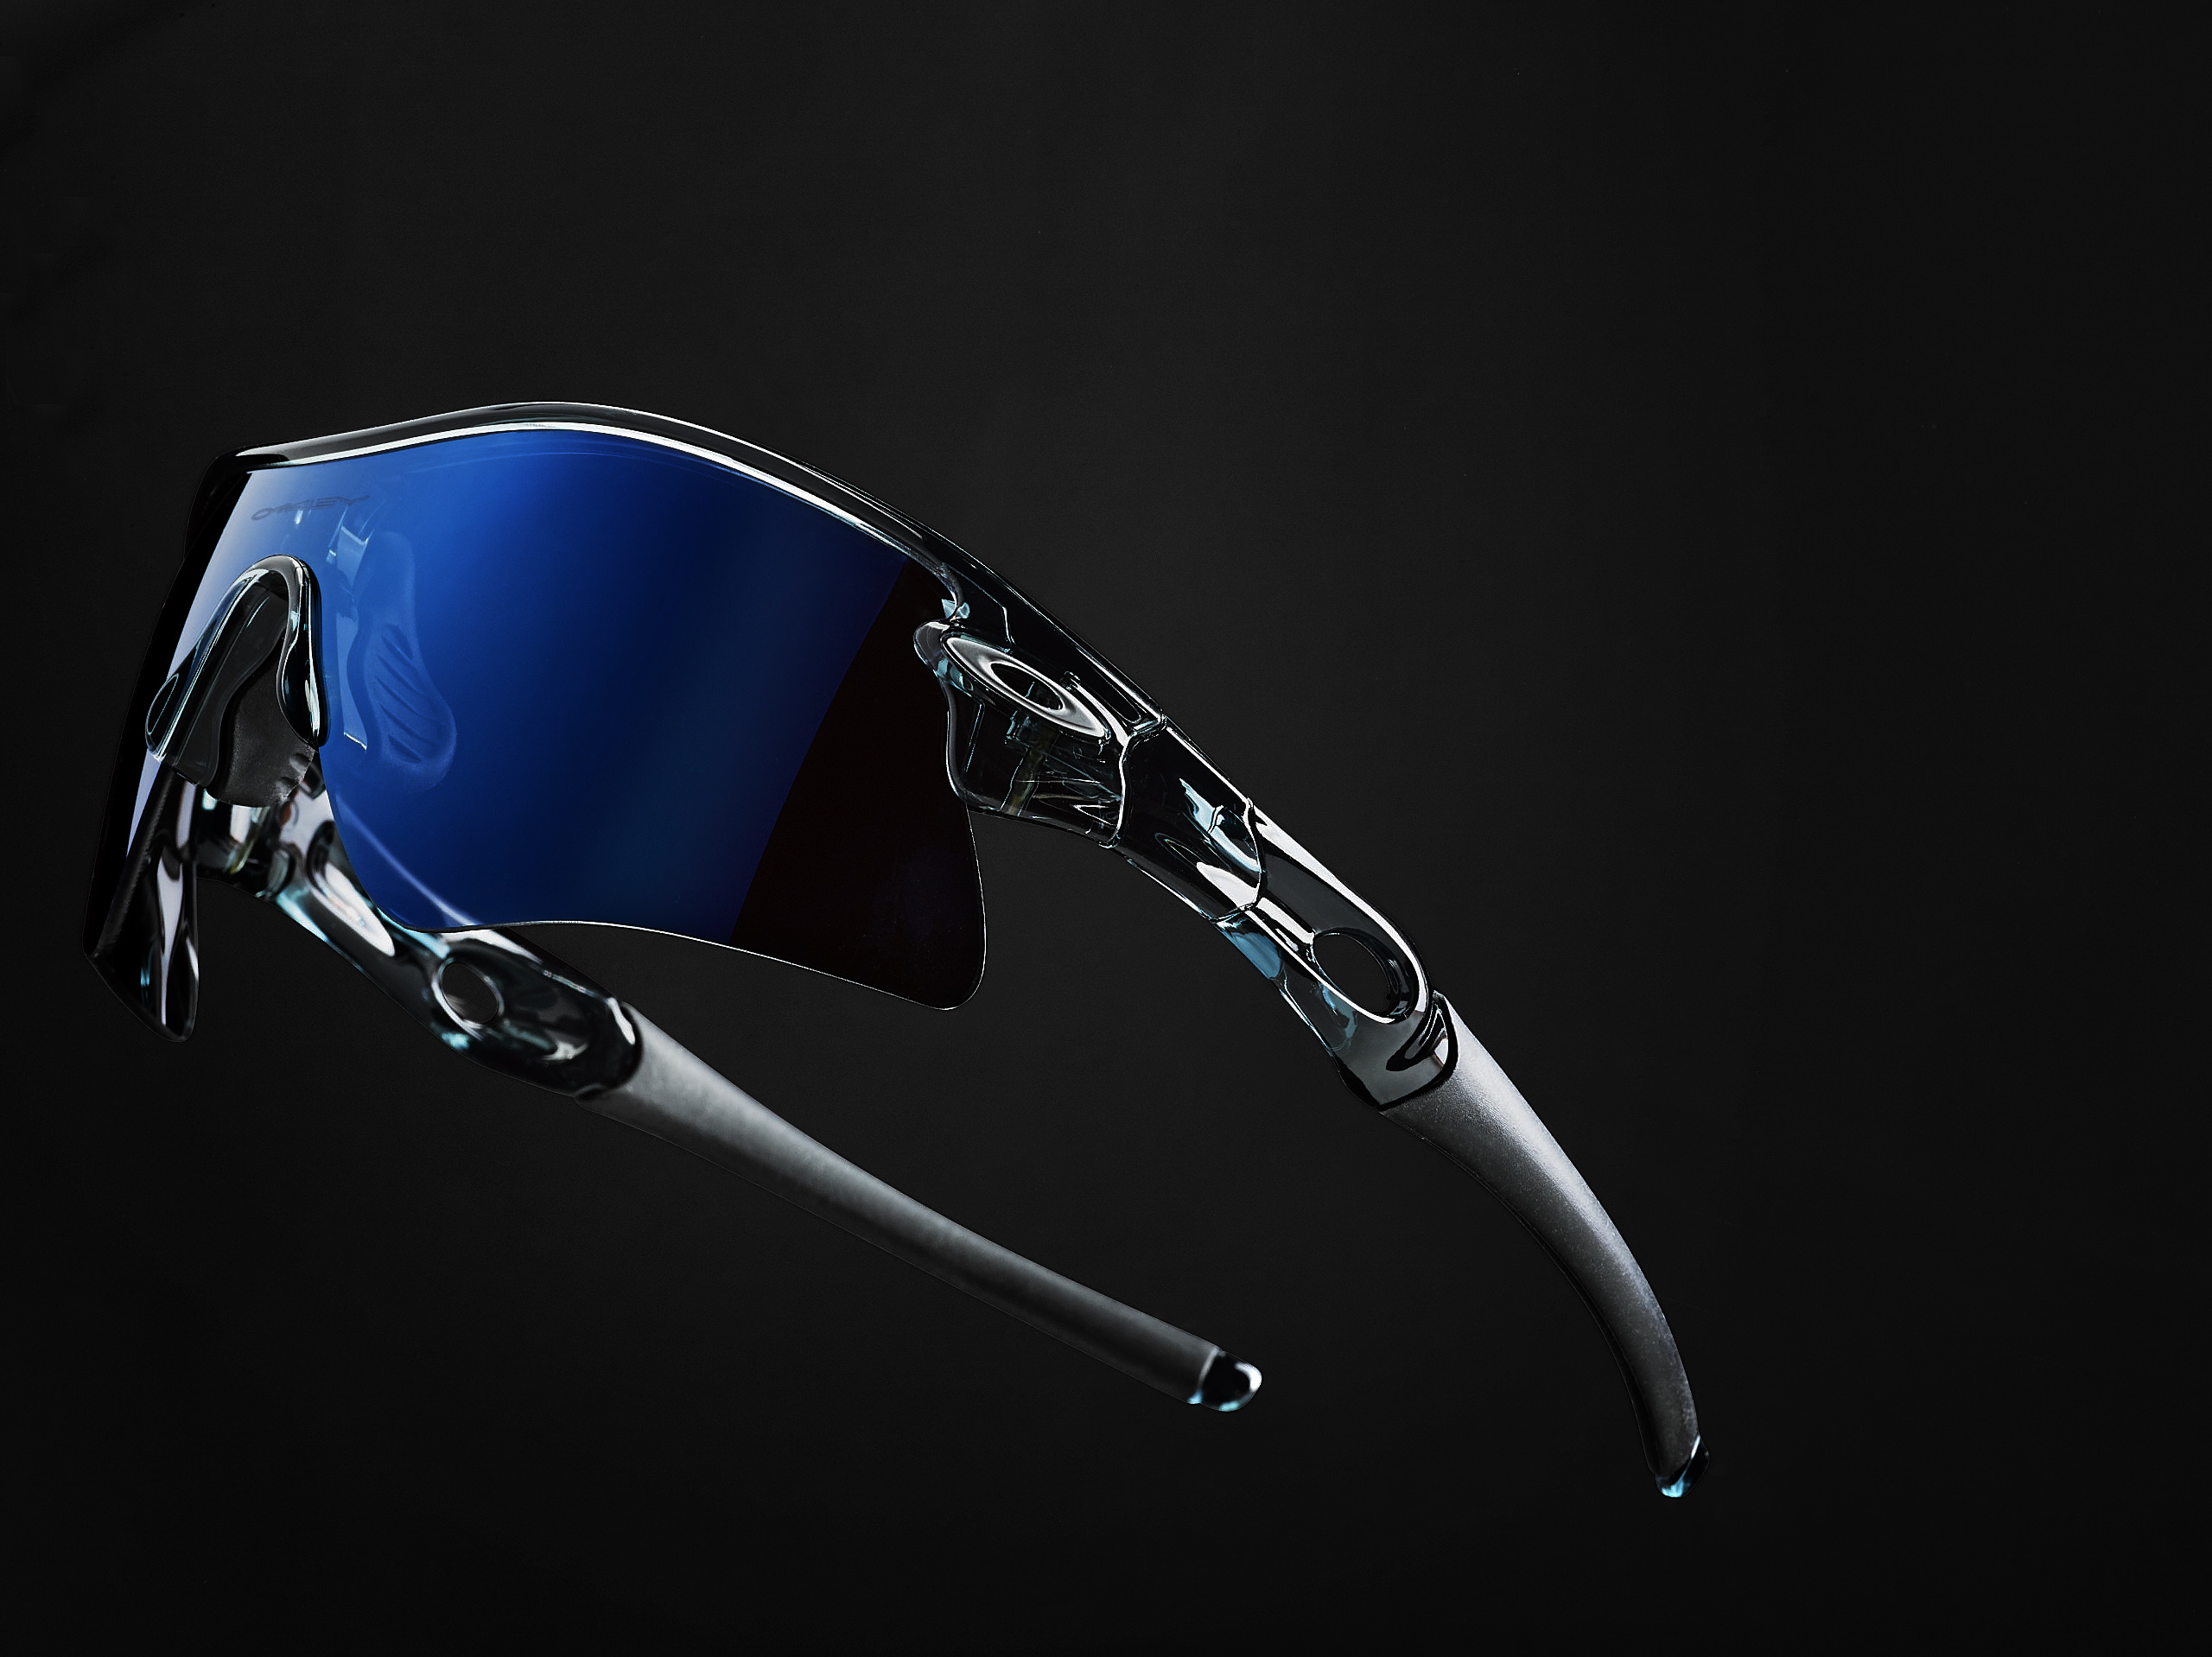 Still life shot of blue Oakley sunglasses on a black background fading dramatically Studio lighting